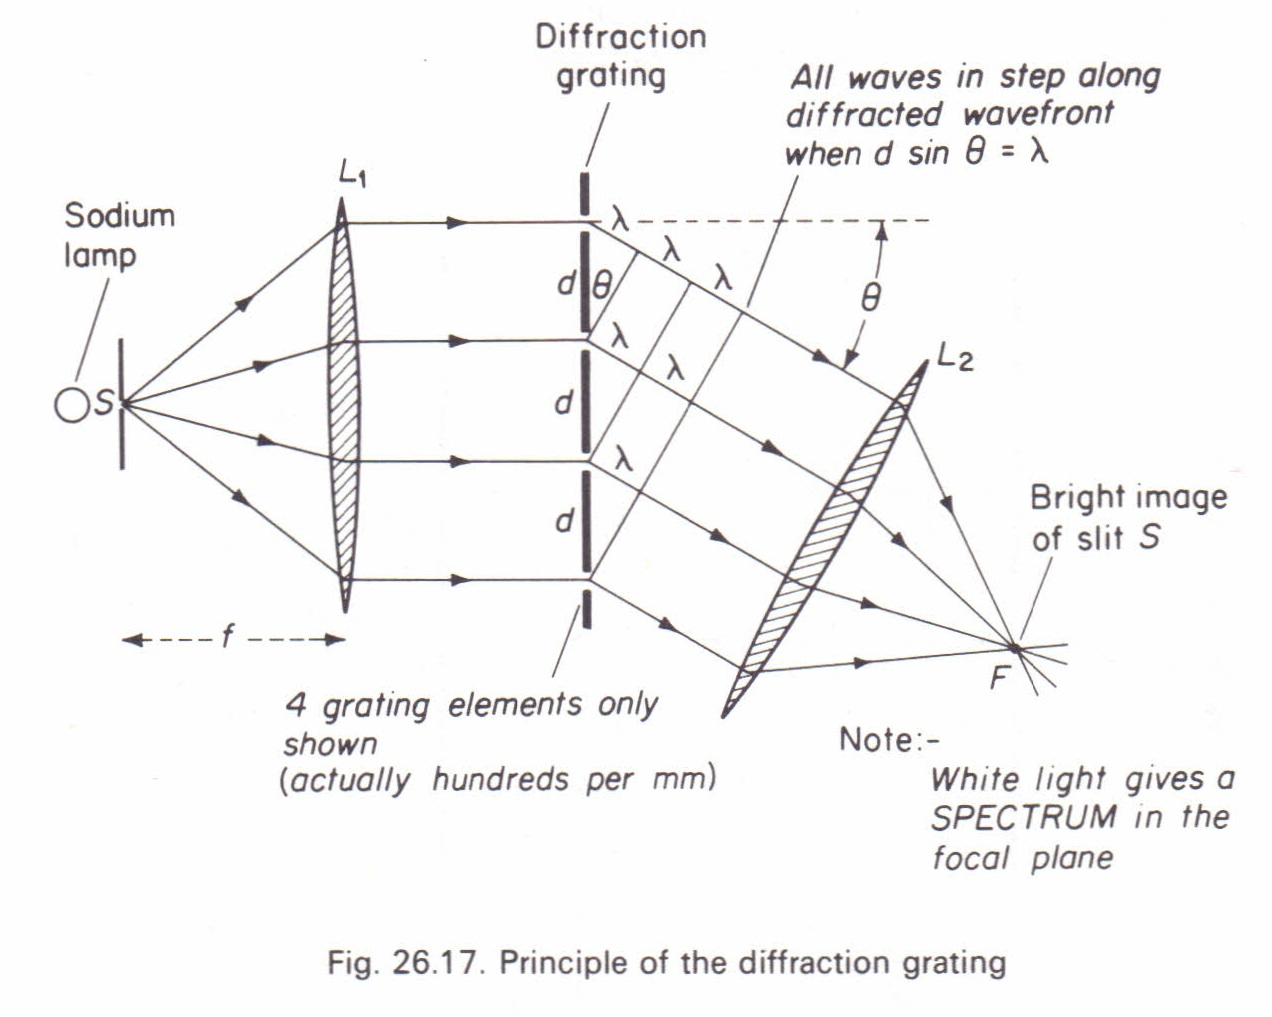 Diffraction grating. The principle of operation of the diffraction grating 54